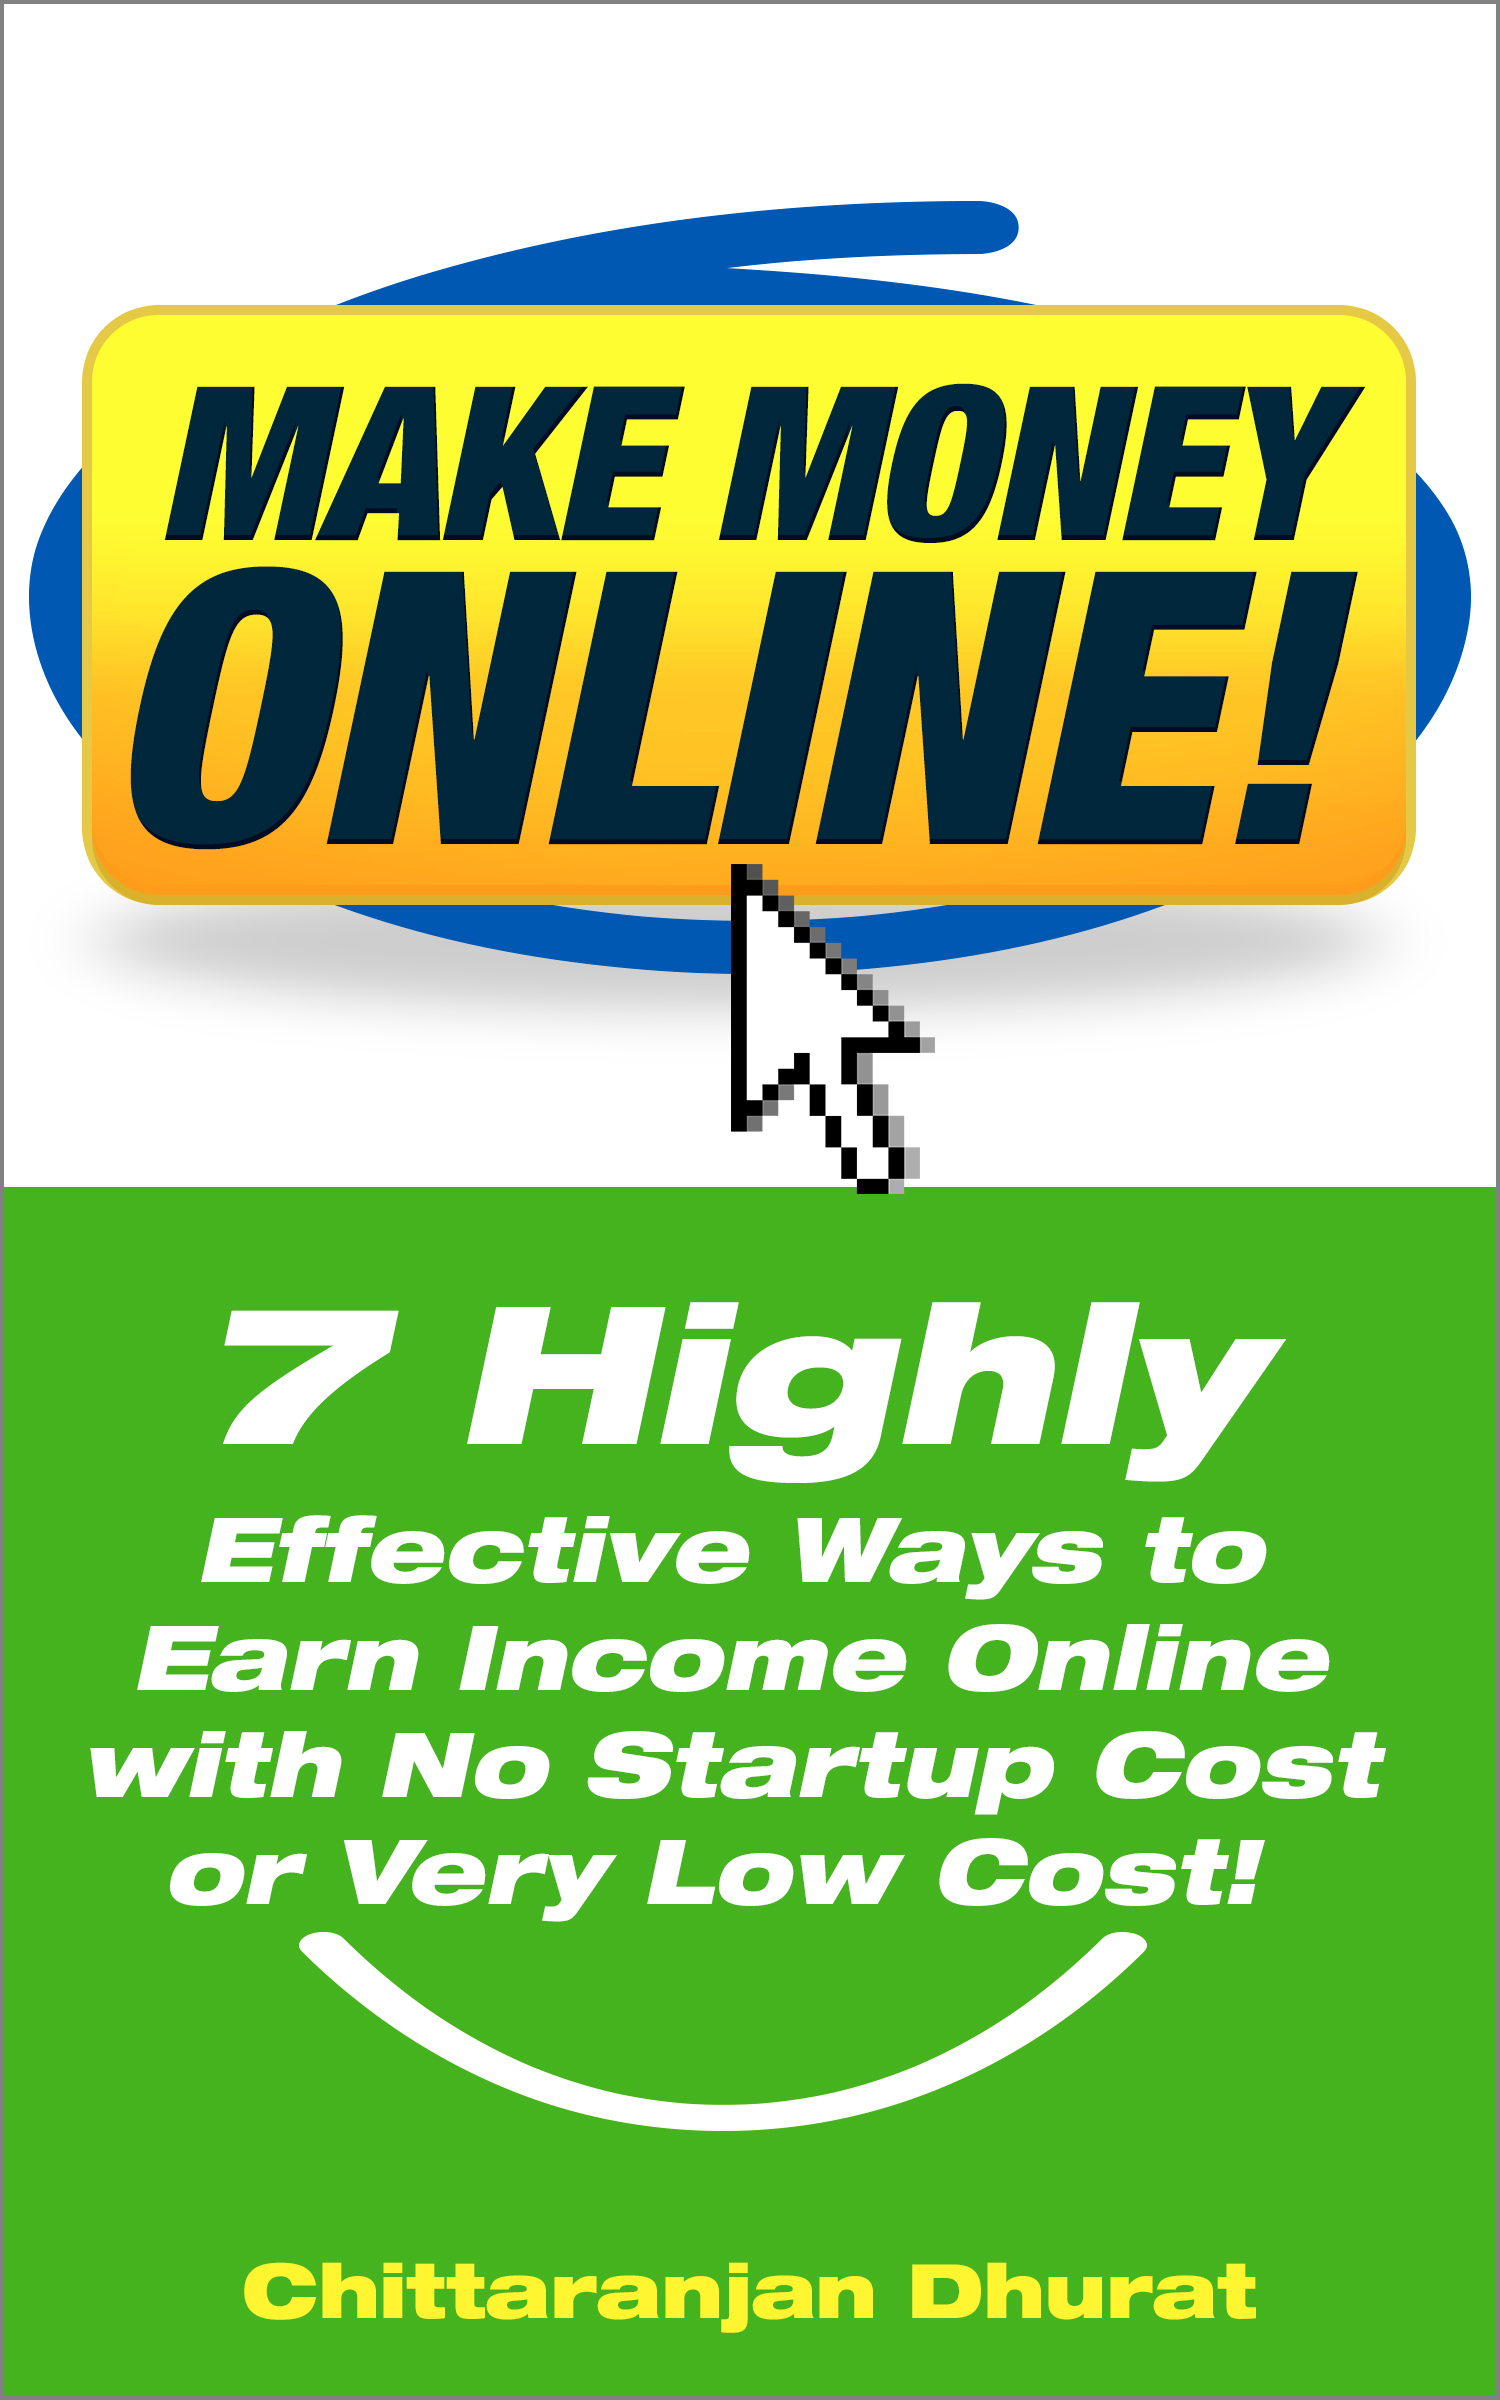 Make Money Online: 7 Highly Effective Ways to Earn Income Online with No Startup Cost or Very Low Cost! Chittaranjan Dhurat